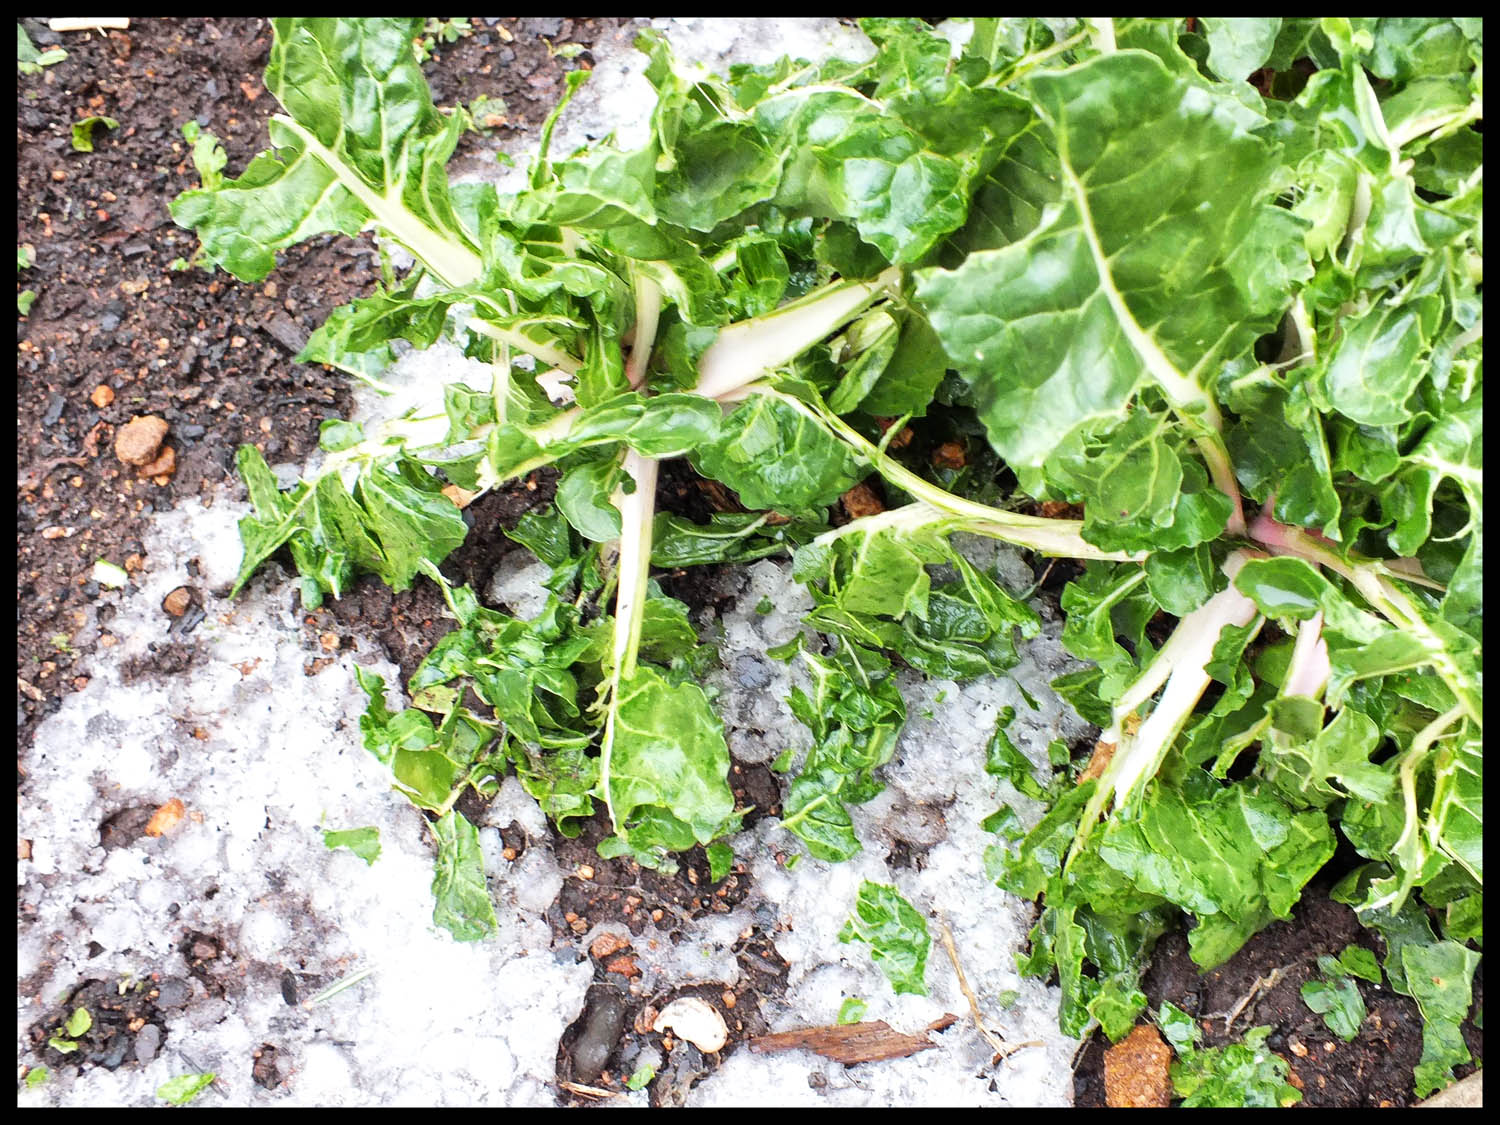 Battered Swiss chard - not quite the image Trish had in mind